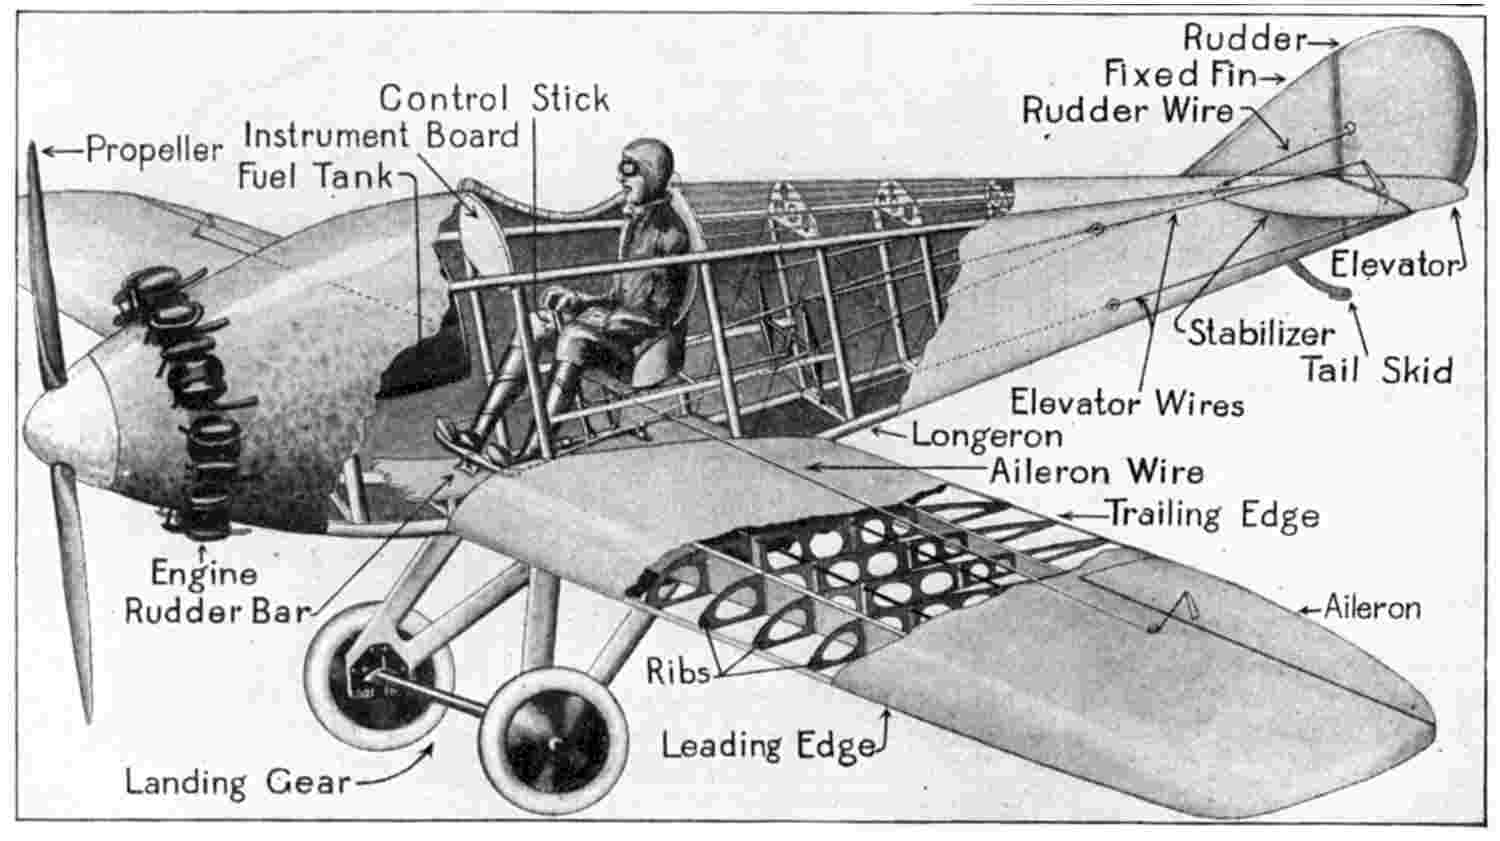 This is a real airplane. Let's get back to the South and build one!